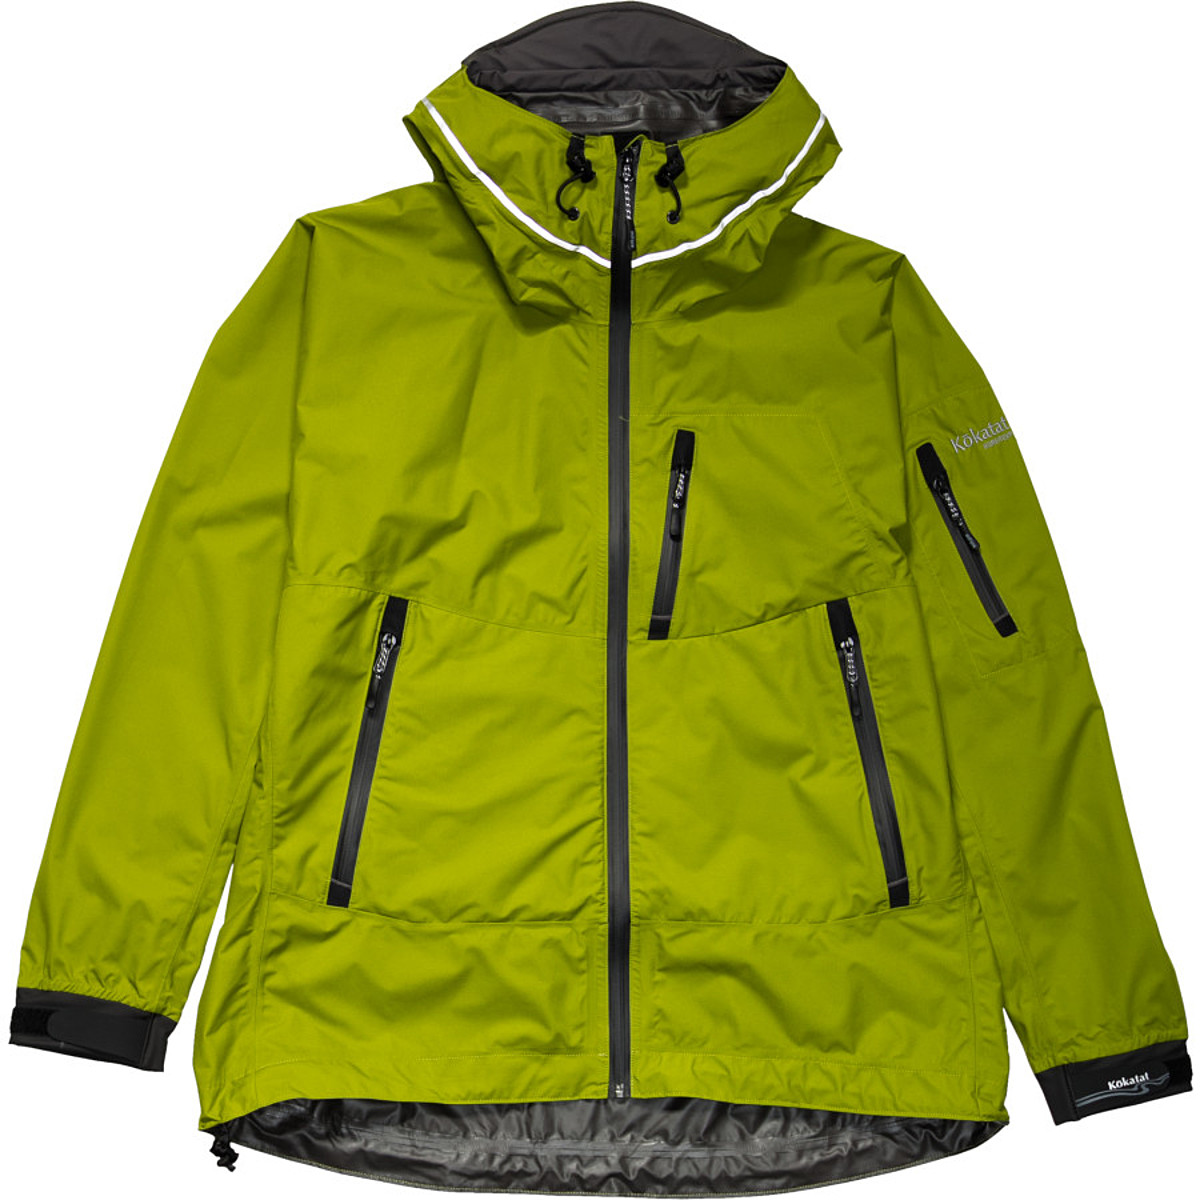 Kokatat Gore-Tex Full Zip Kayak Paddle Jacket